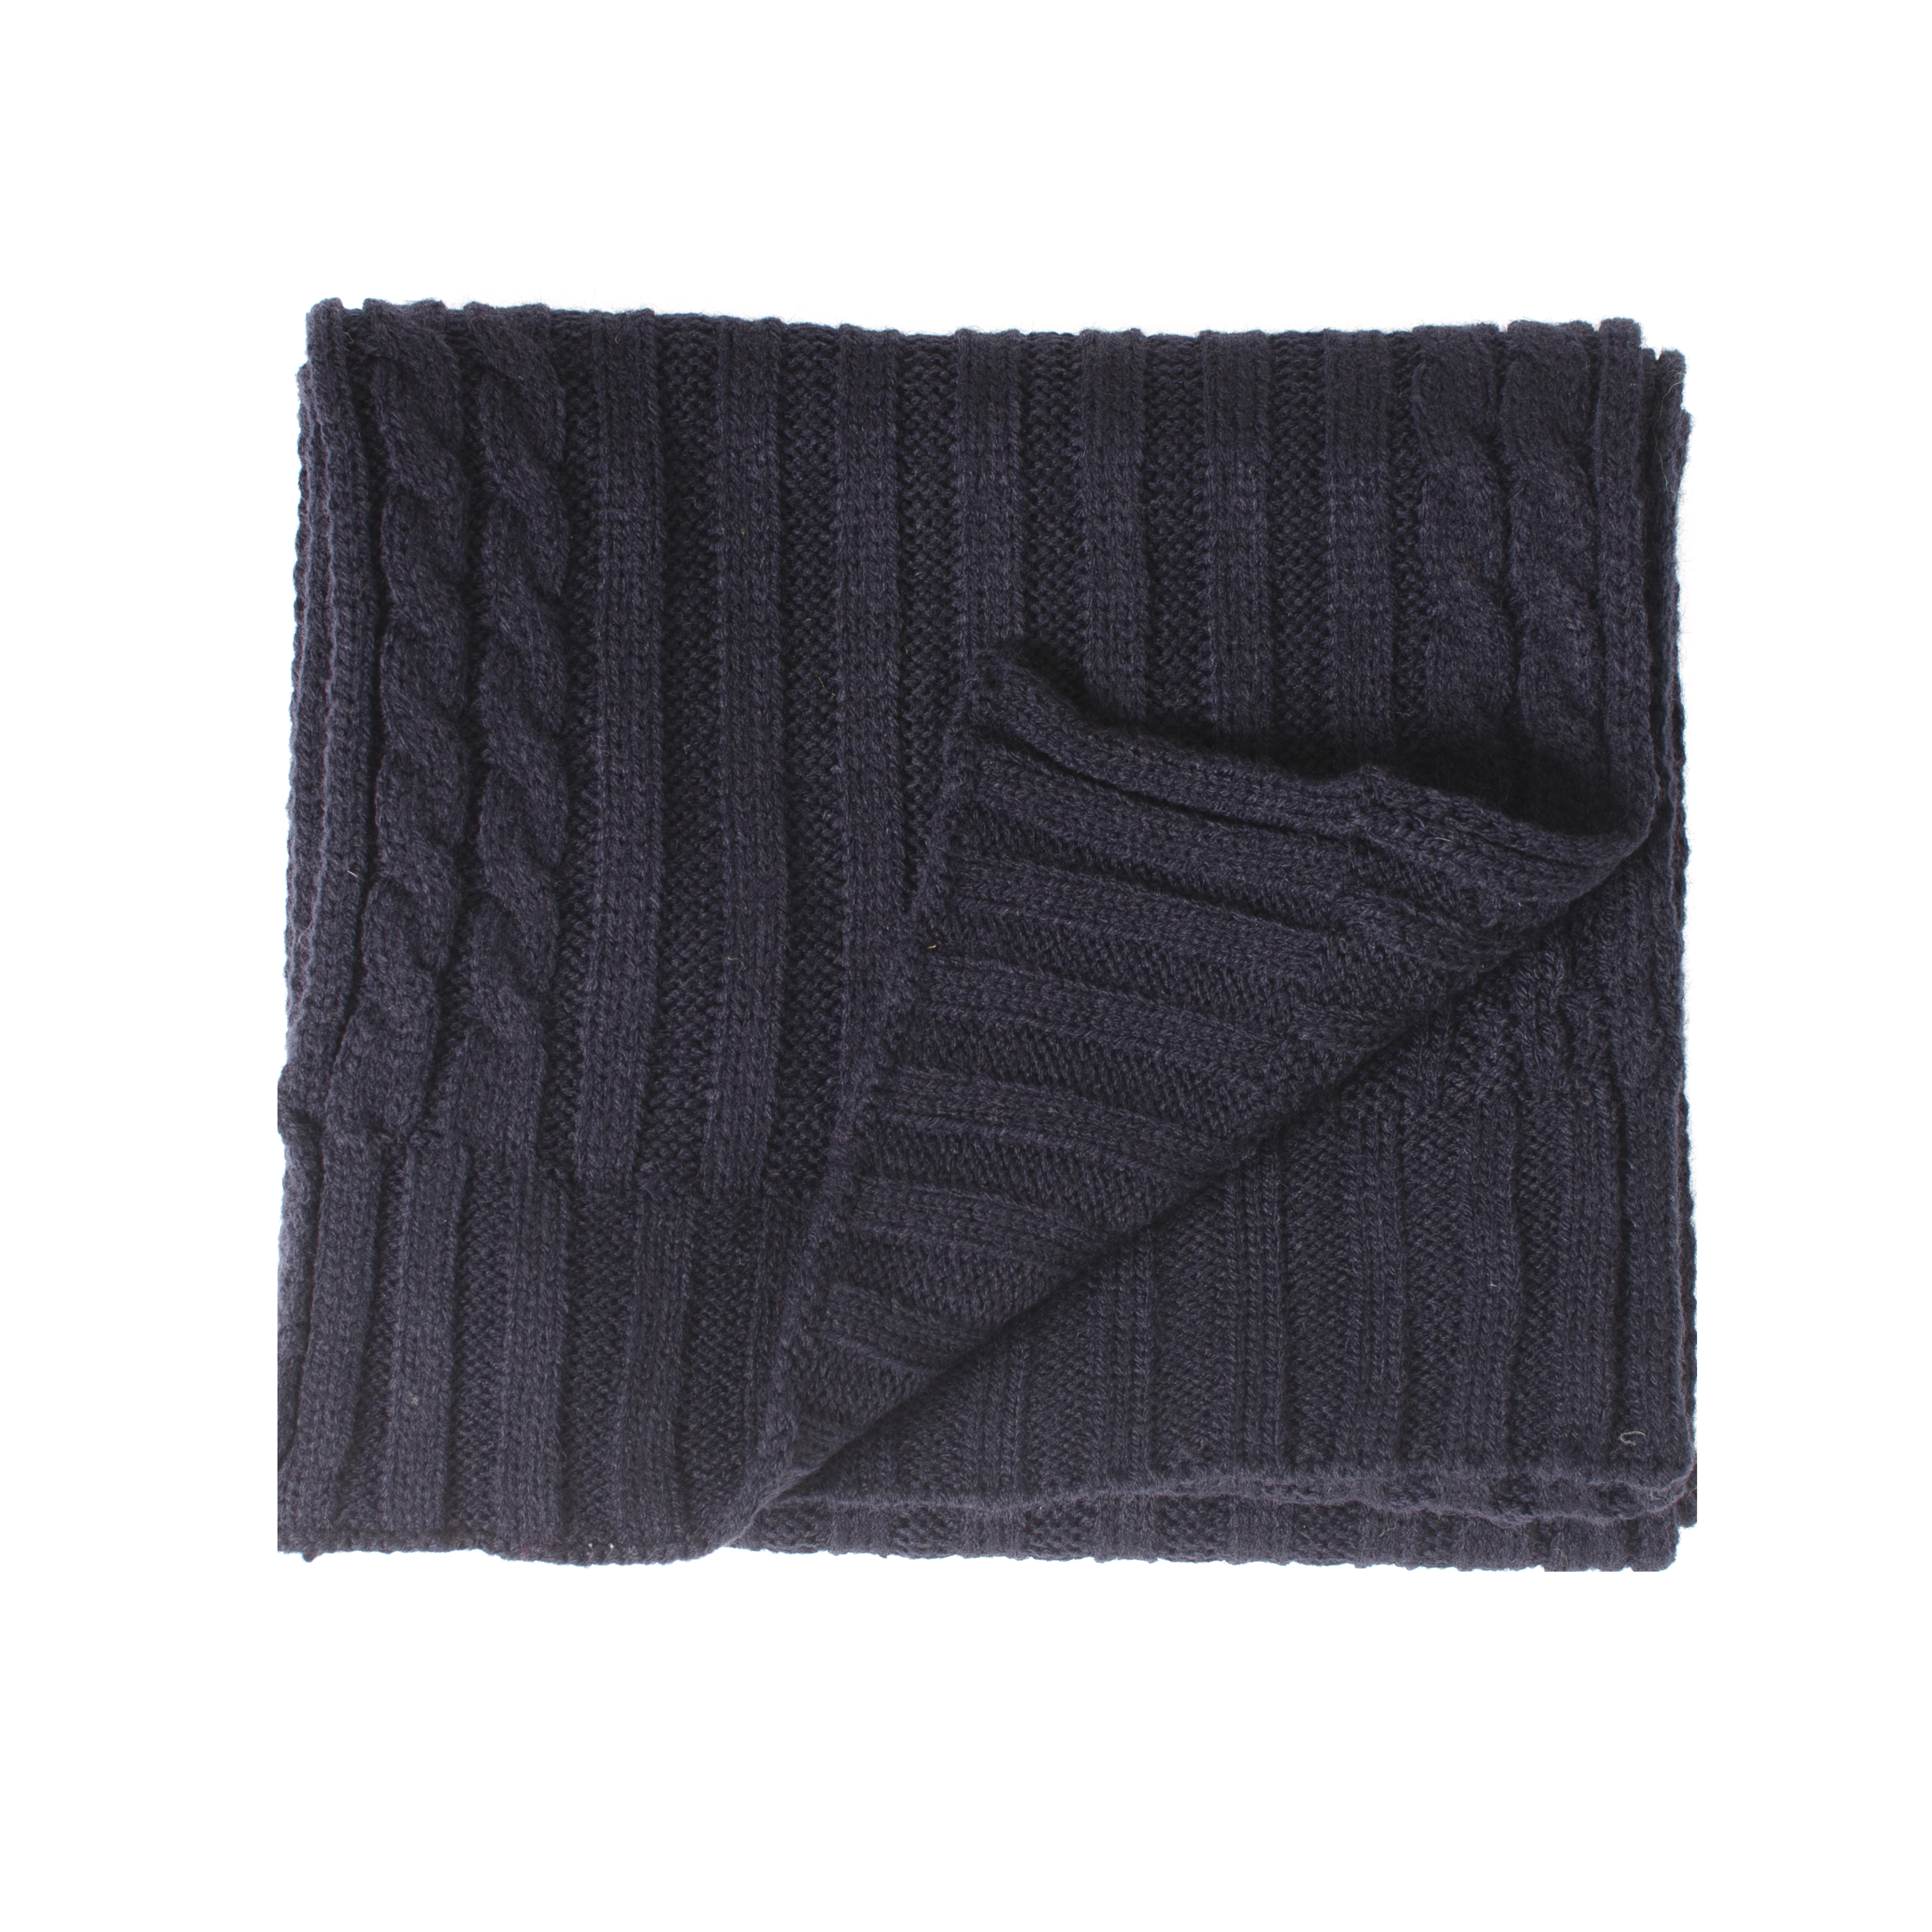 Josh   Scarf cable knitted in navy